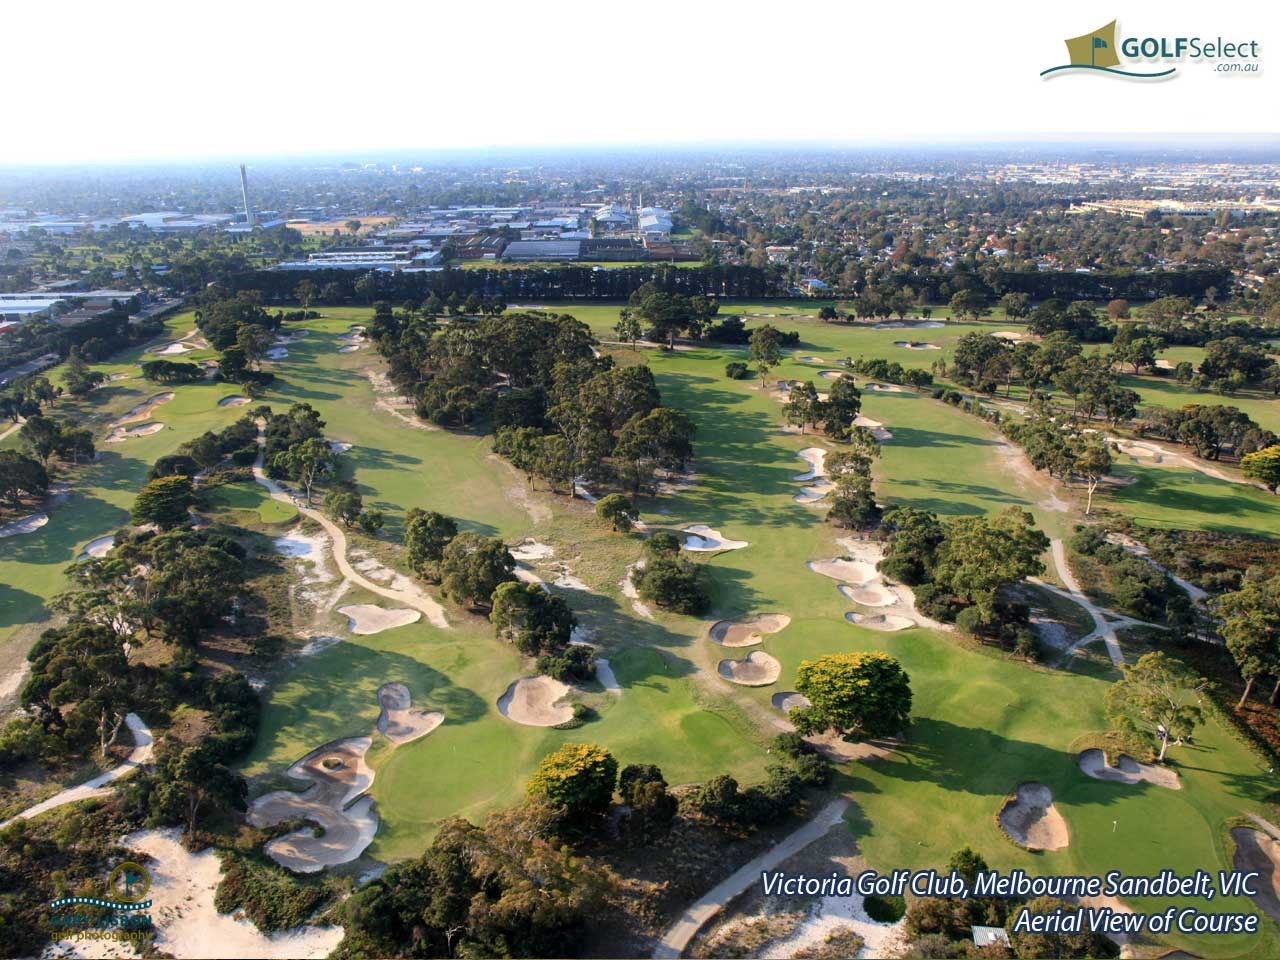 Victoria Golf Club Aerial Image of Course